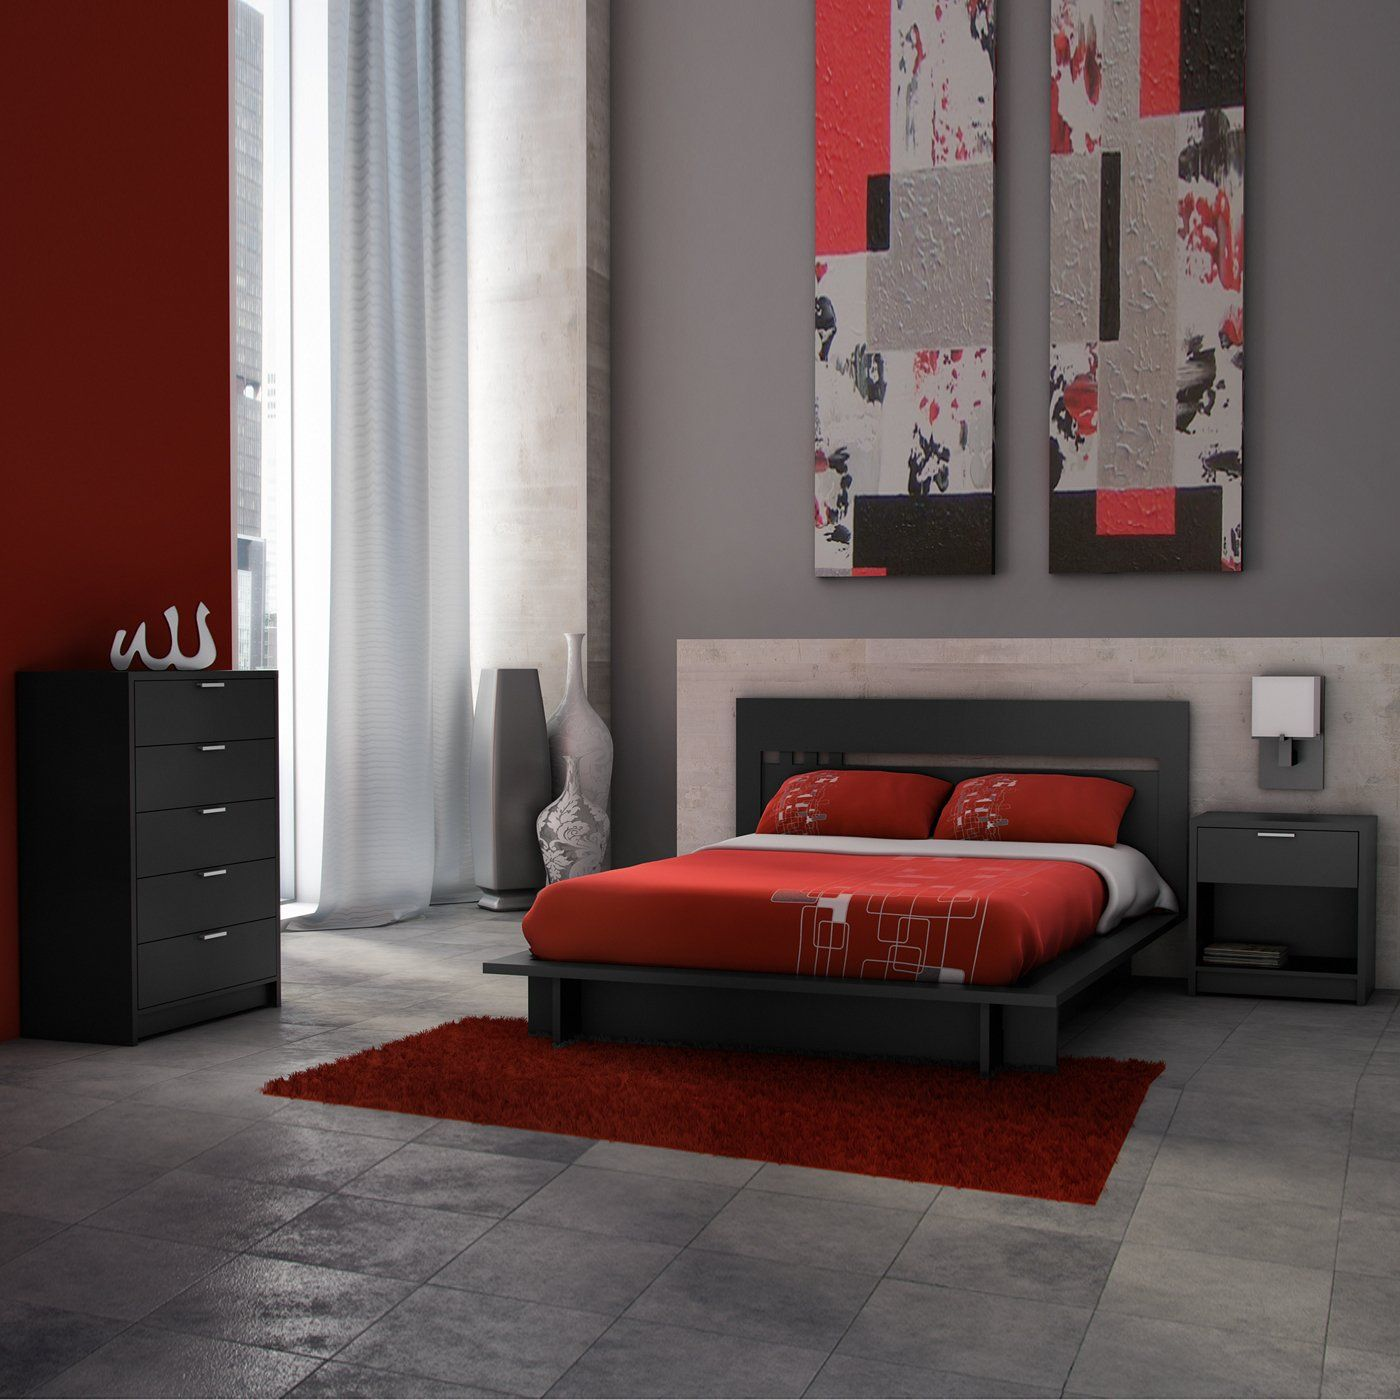 A black bedroom set with red decor. Inspired by European modernism ...